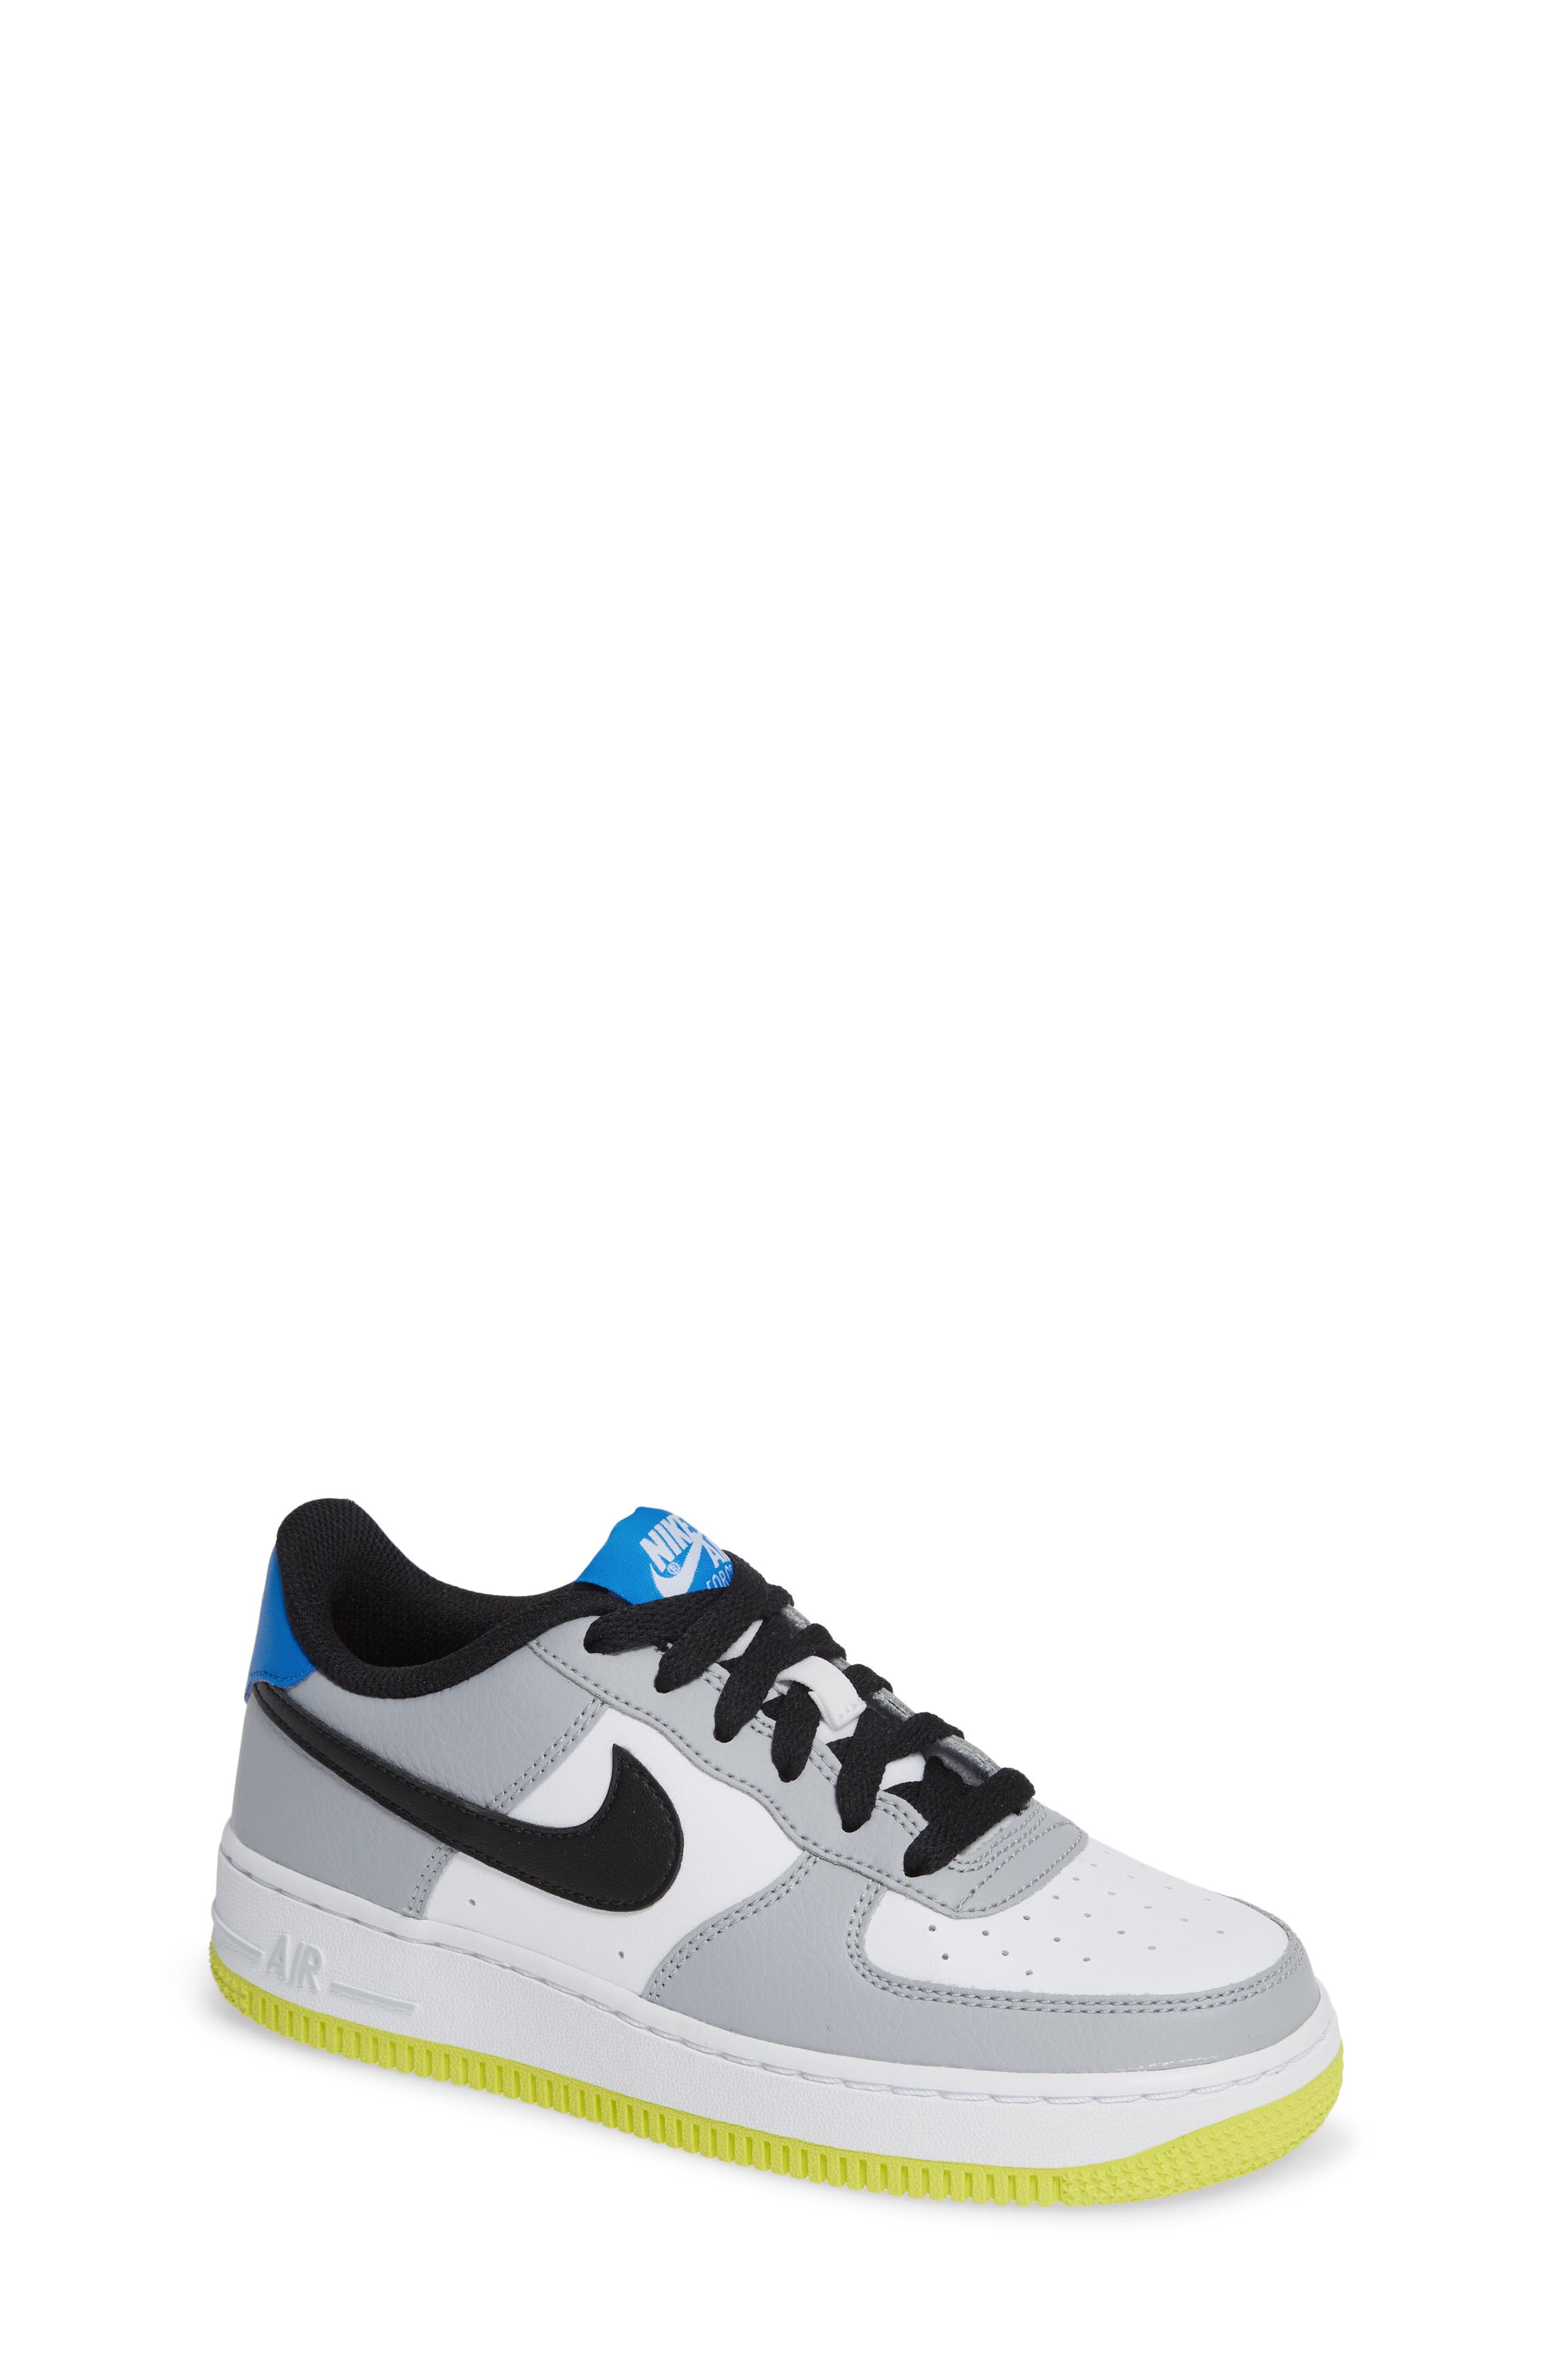 Air Force 1 Sneaker,                         Main,                         color, Wolf Grey/ Black/ White/ Blue